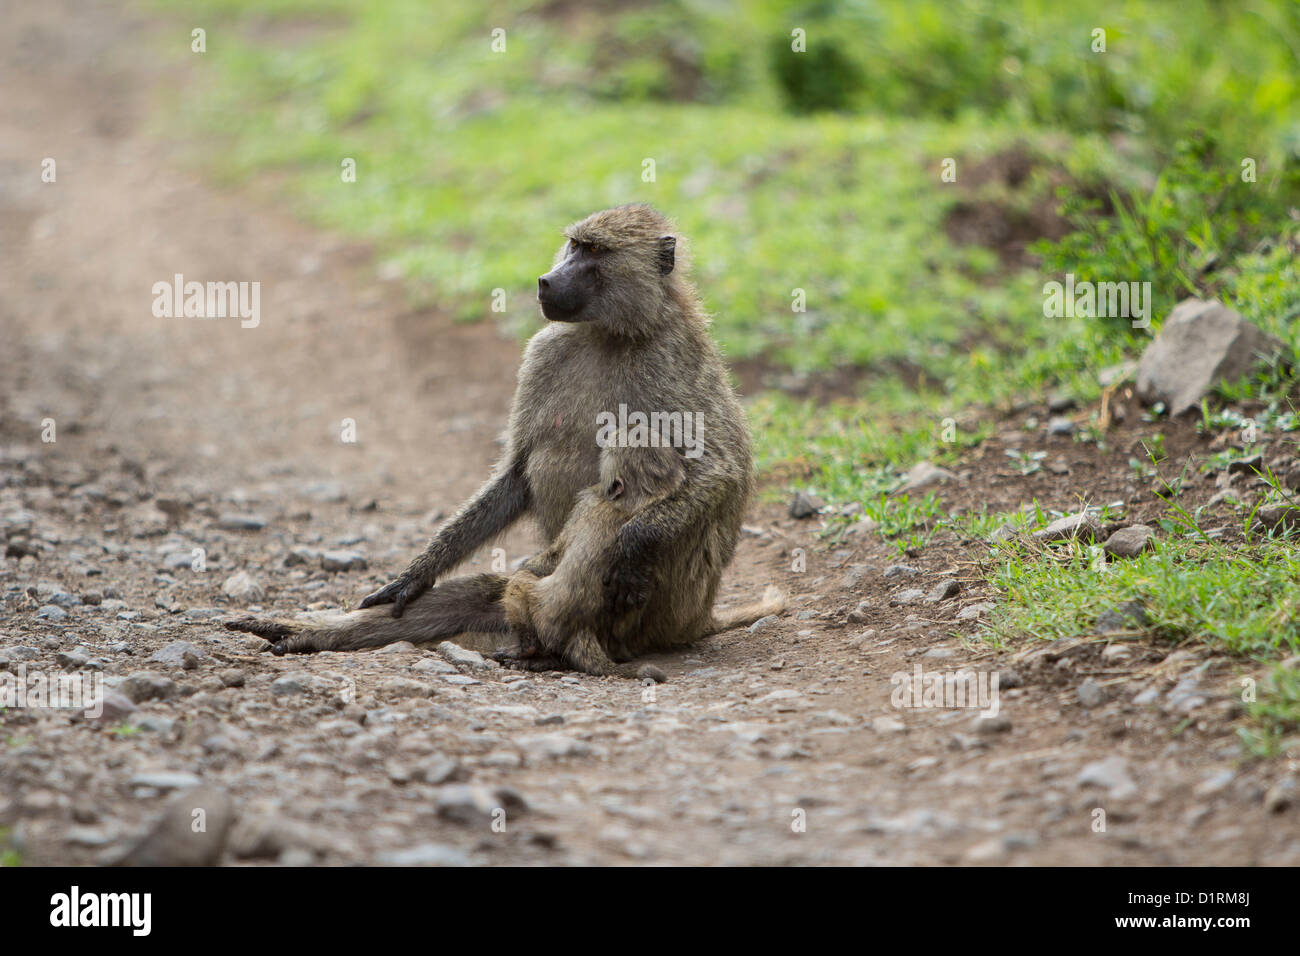 Baboons in Arusha National Park Tanzania Africa - Stock Image